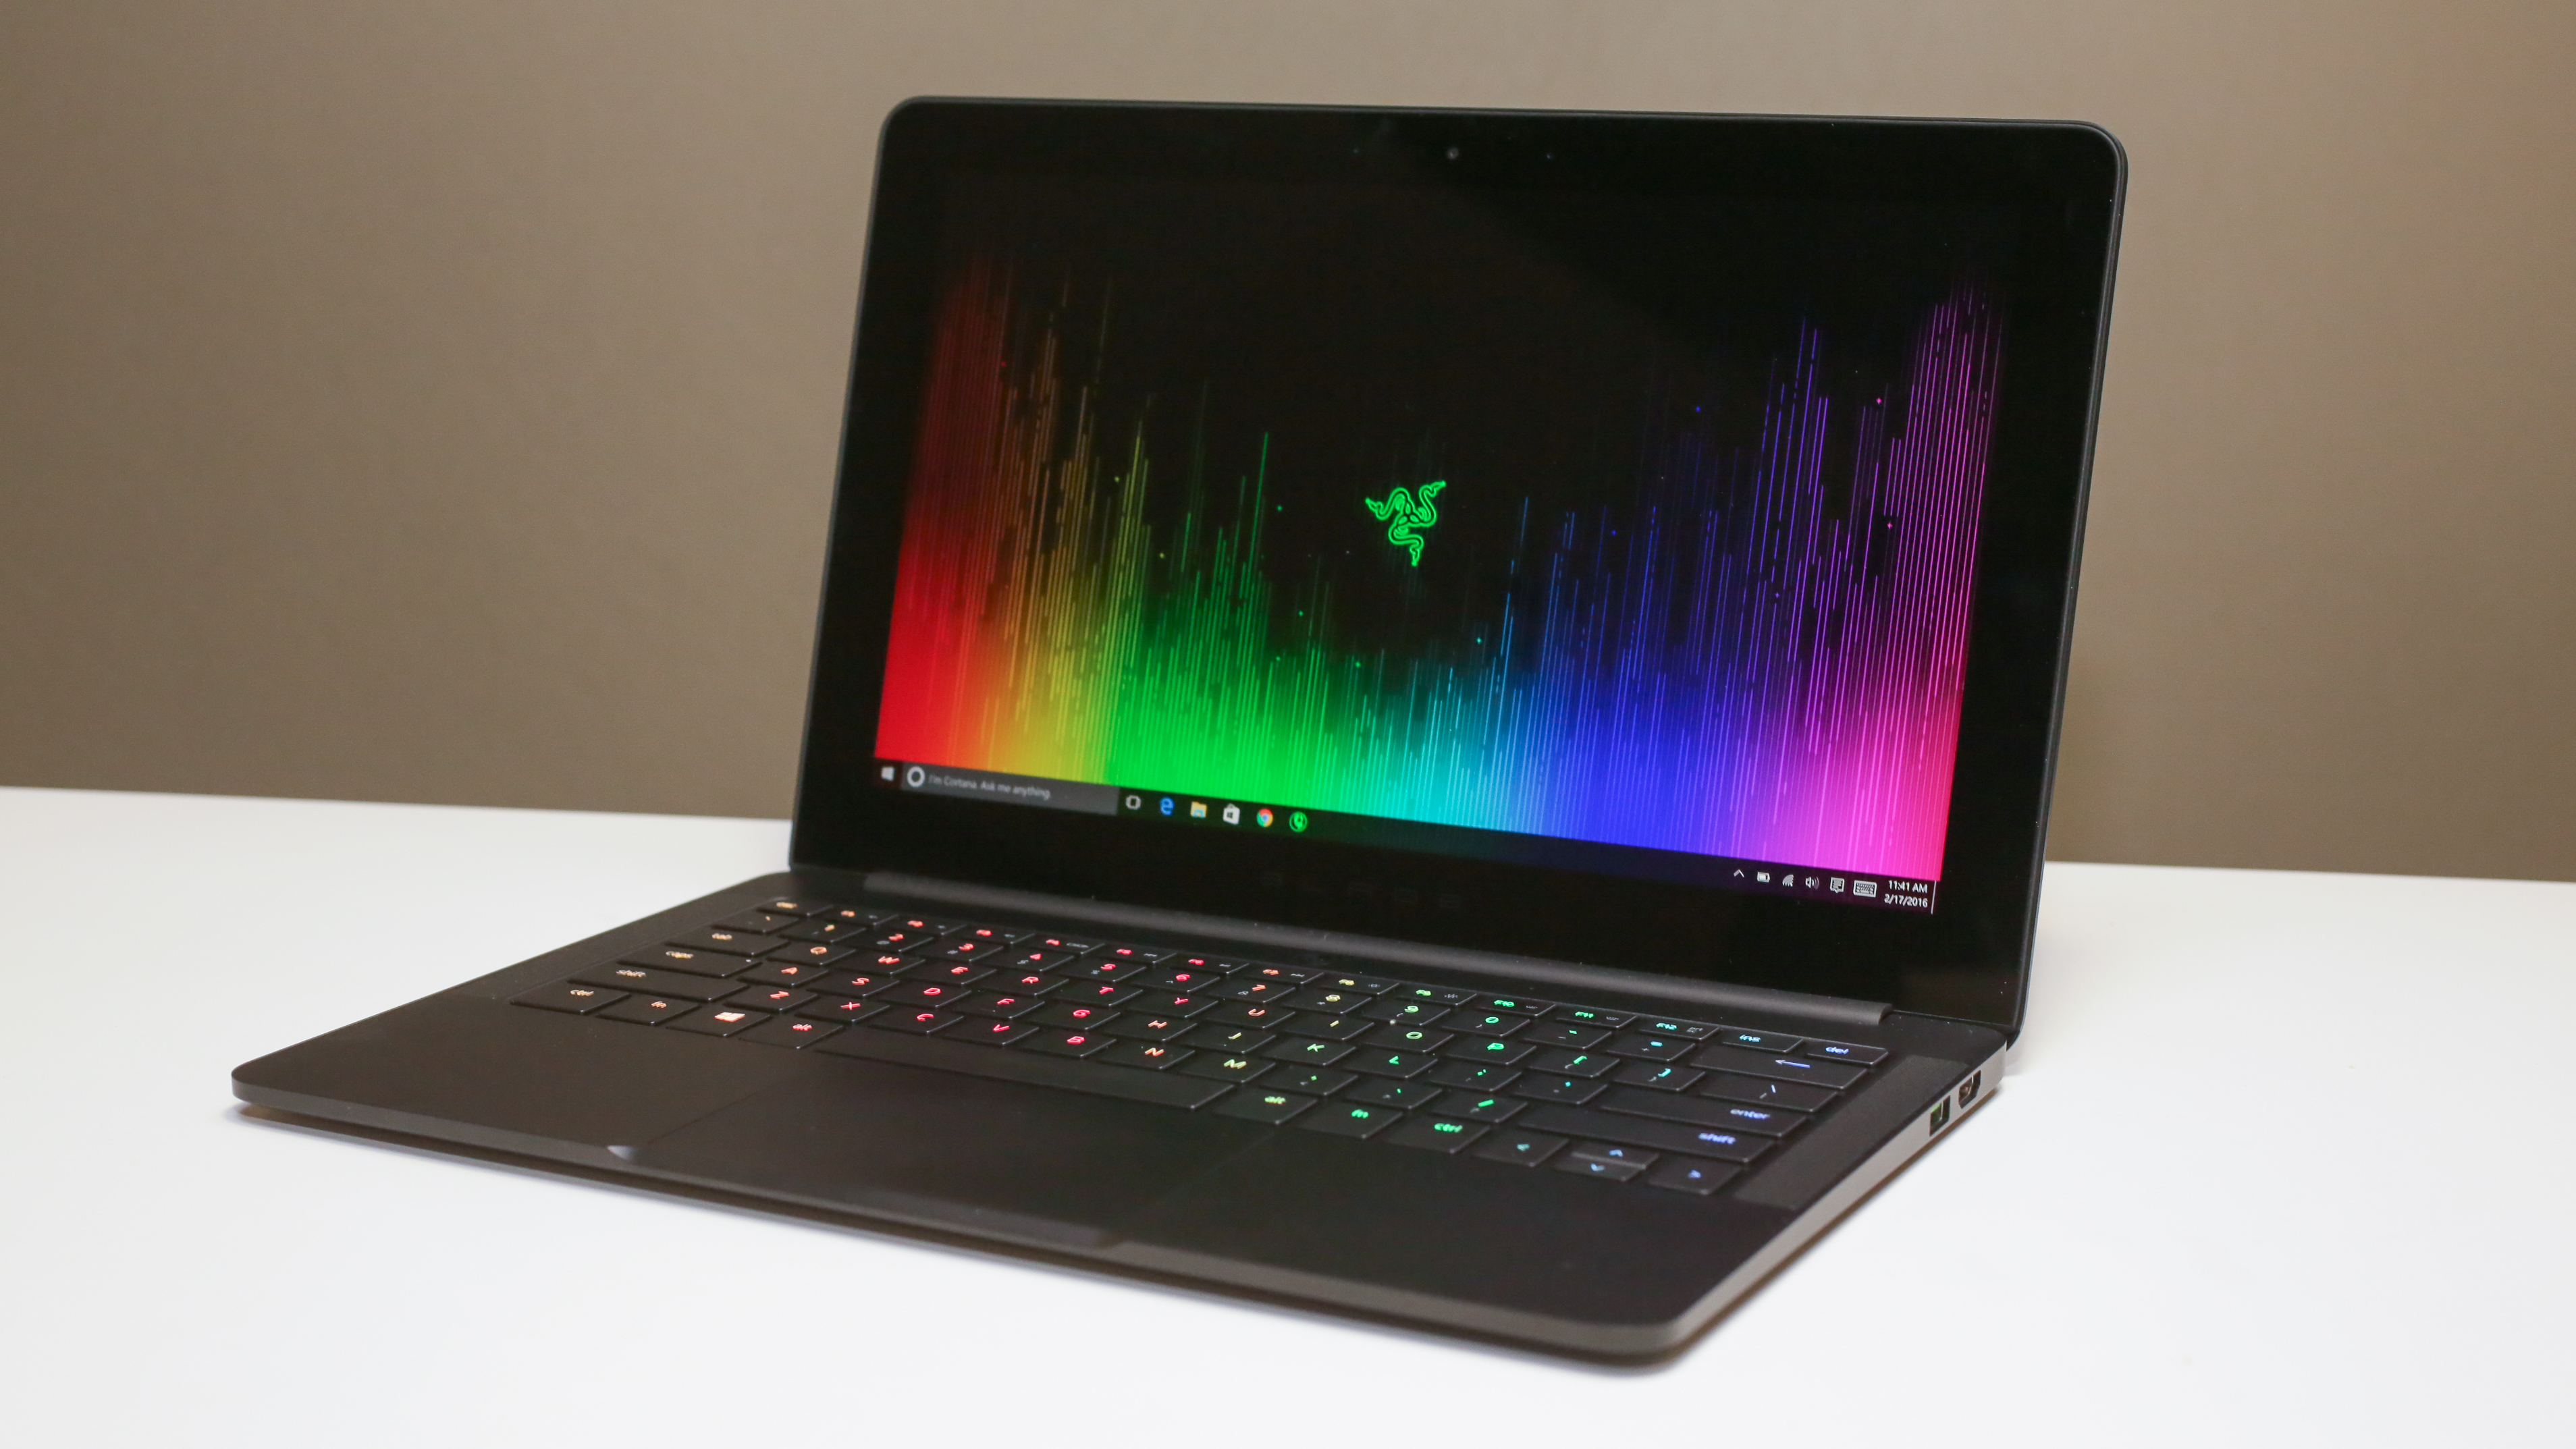 Razer Blade Stealth review: This slick new laptop will make your MacBook Air jealous